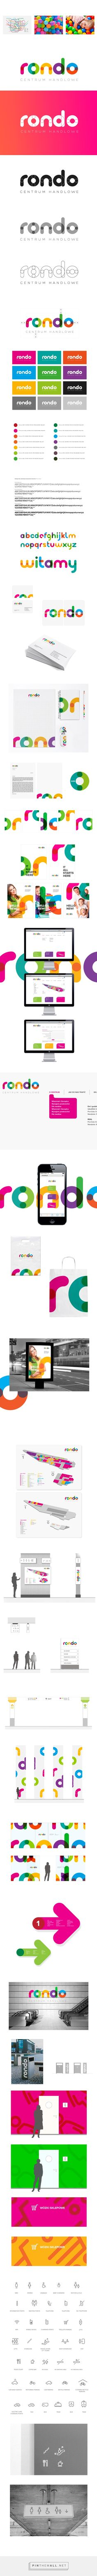 shopping mall RONDO re-branding on Behance | Fivestar Branding – Design and Branding Agency & Inspiration Gallery